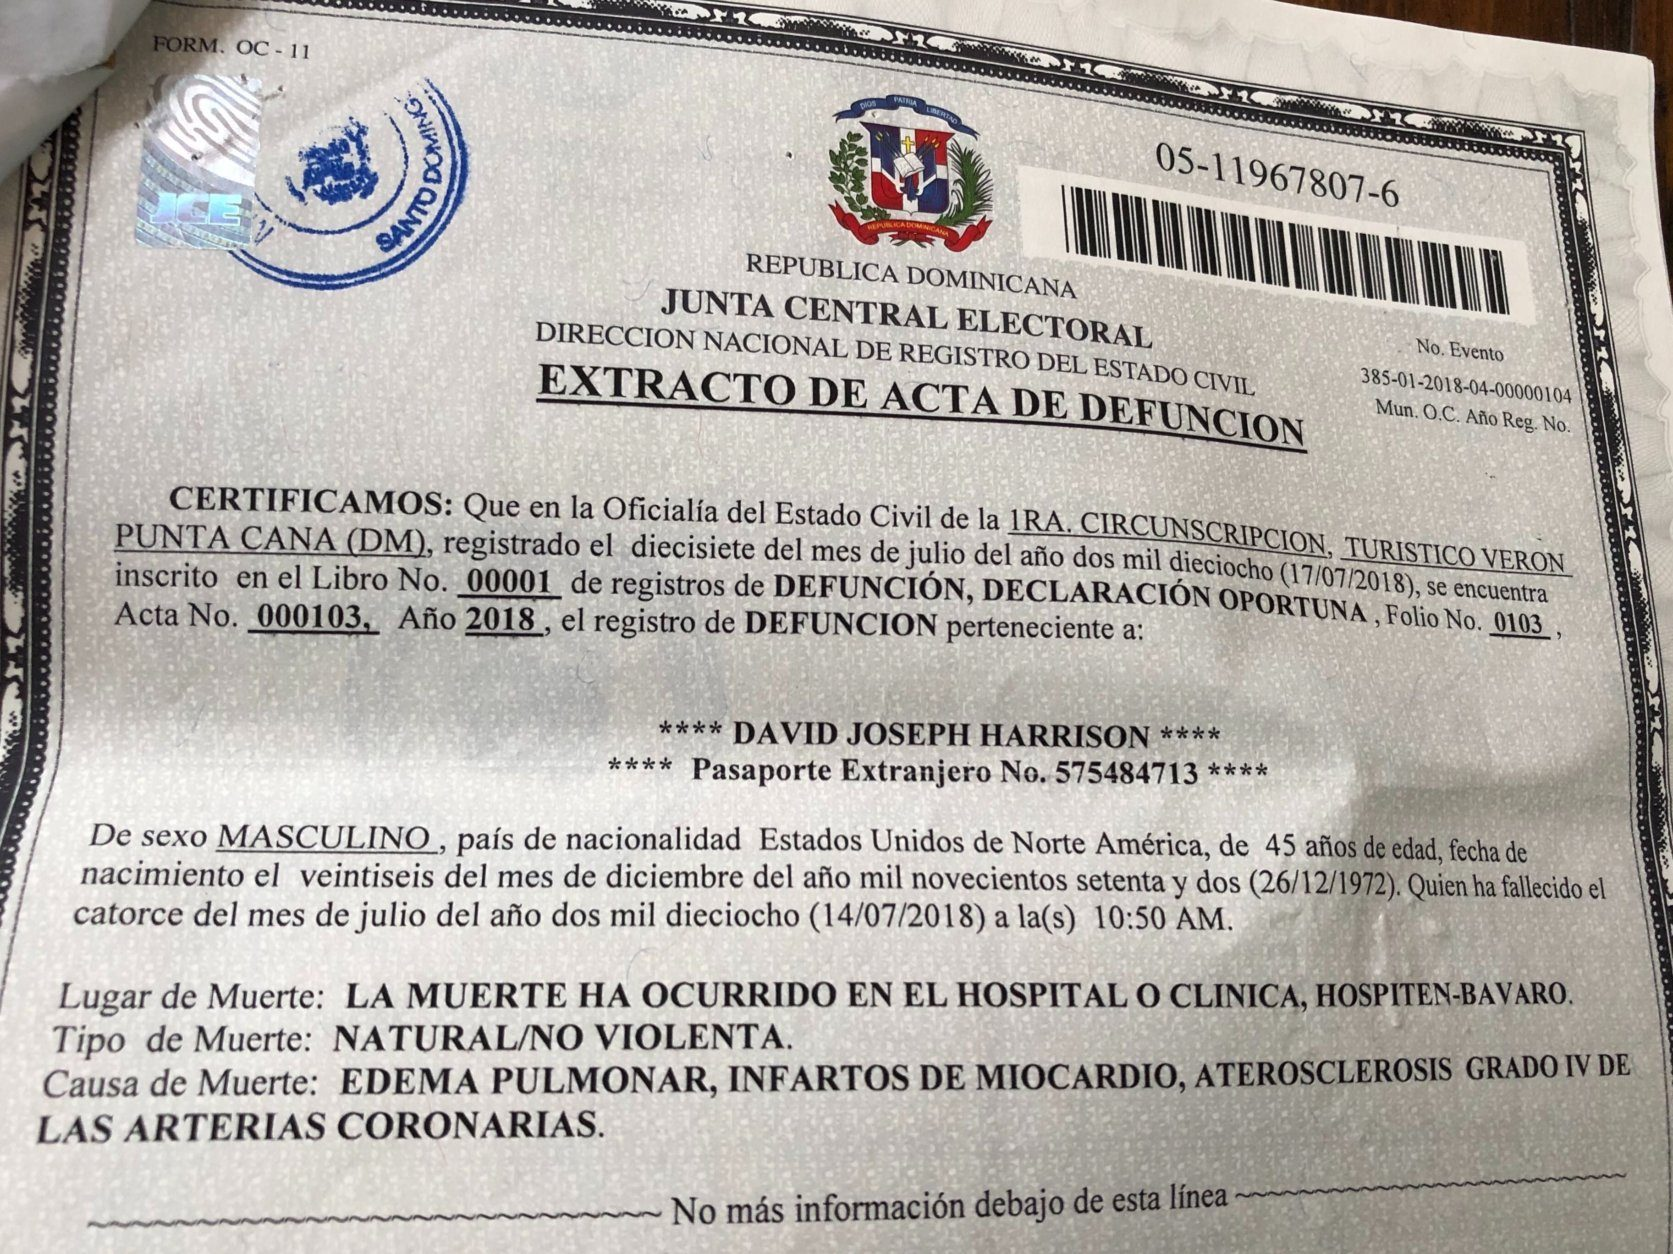 Harrison's death certificate from the Dominican Republic. (WTOP/Michelle Basch)